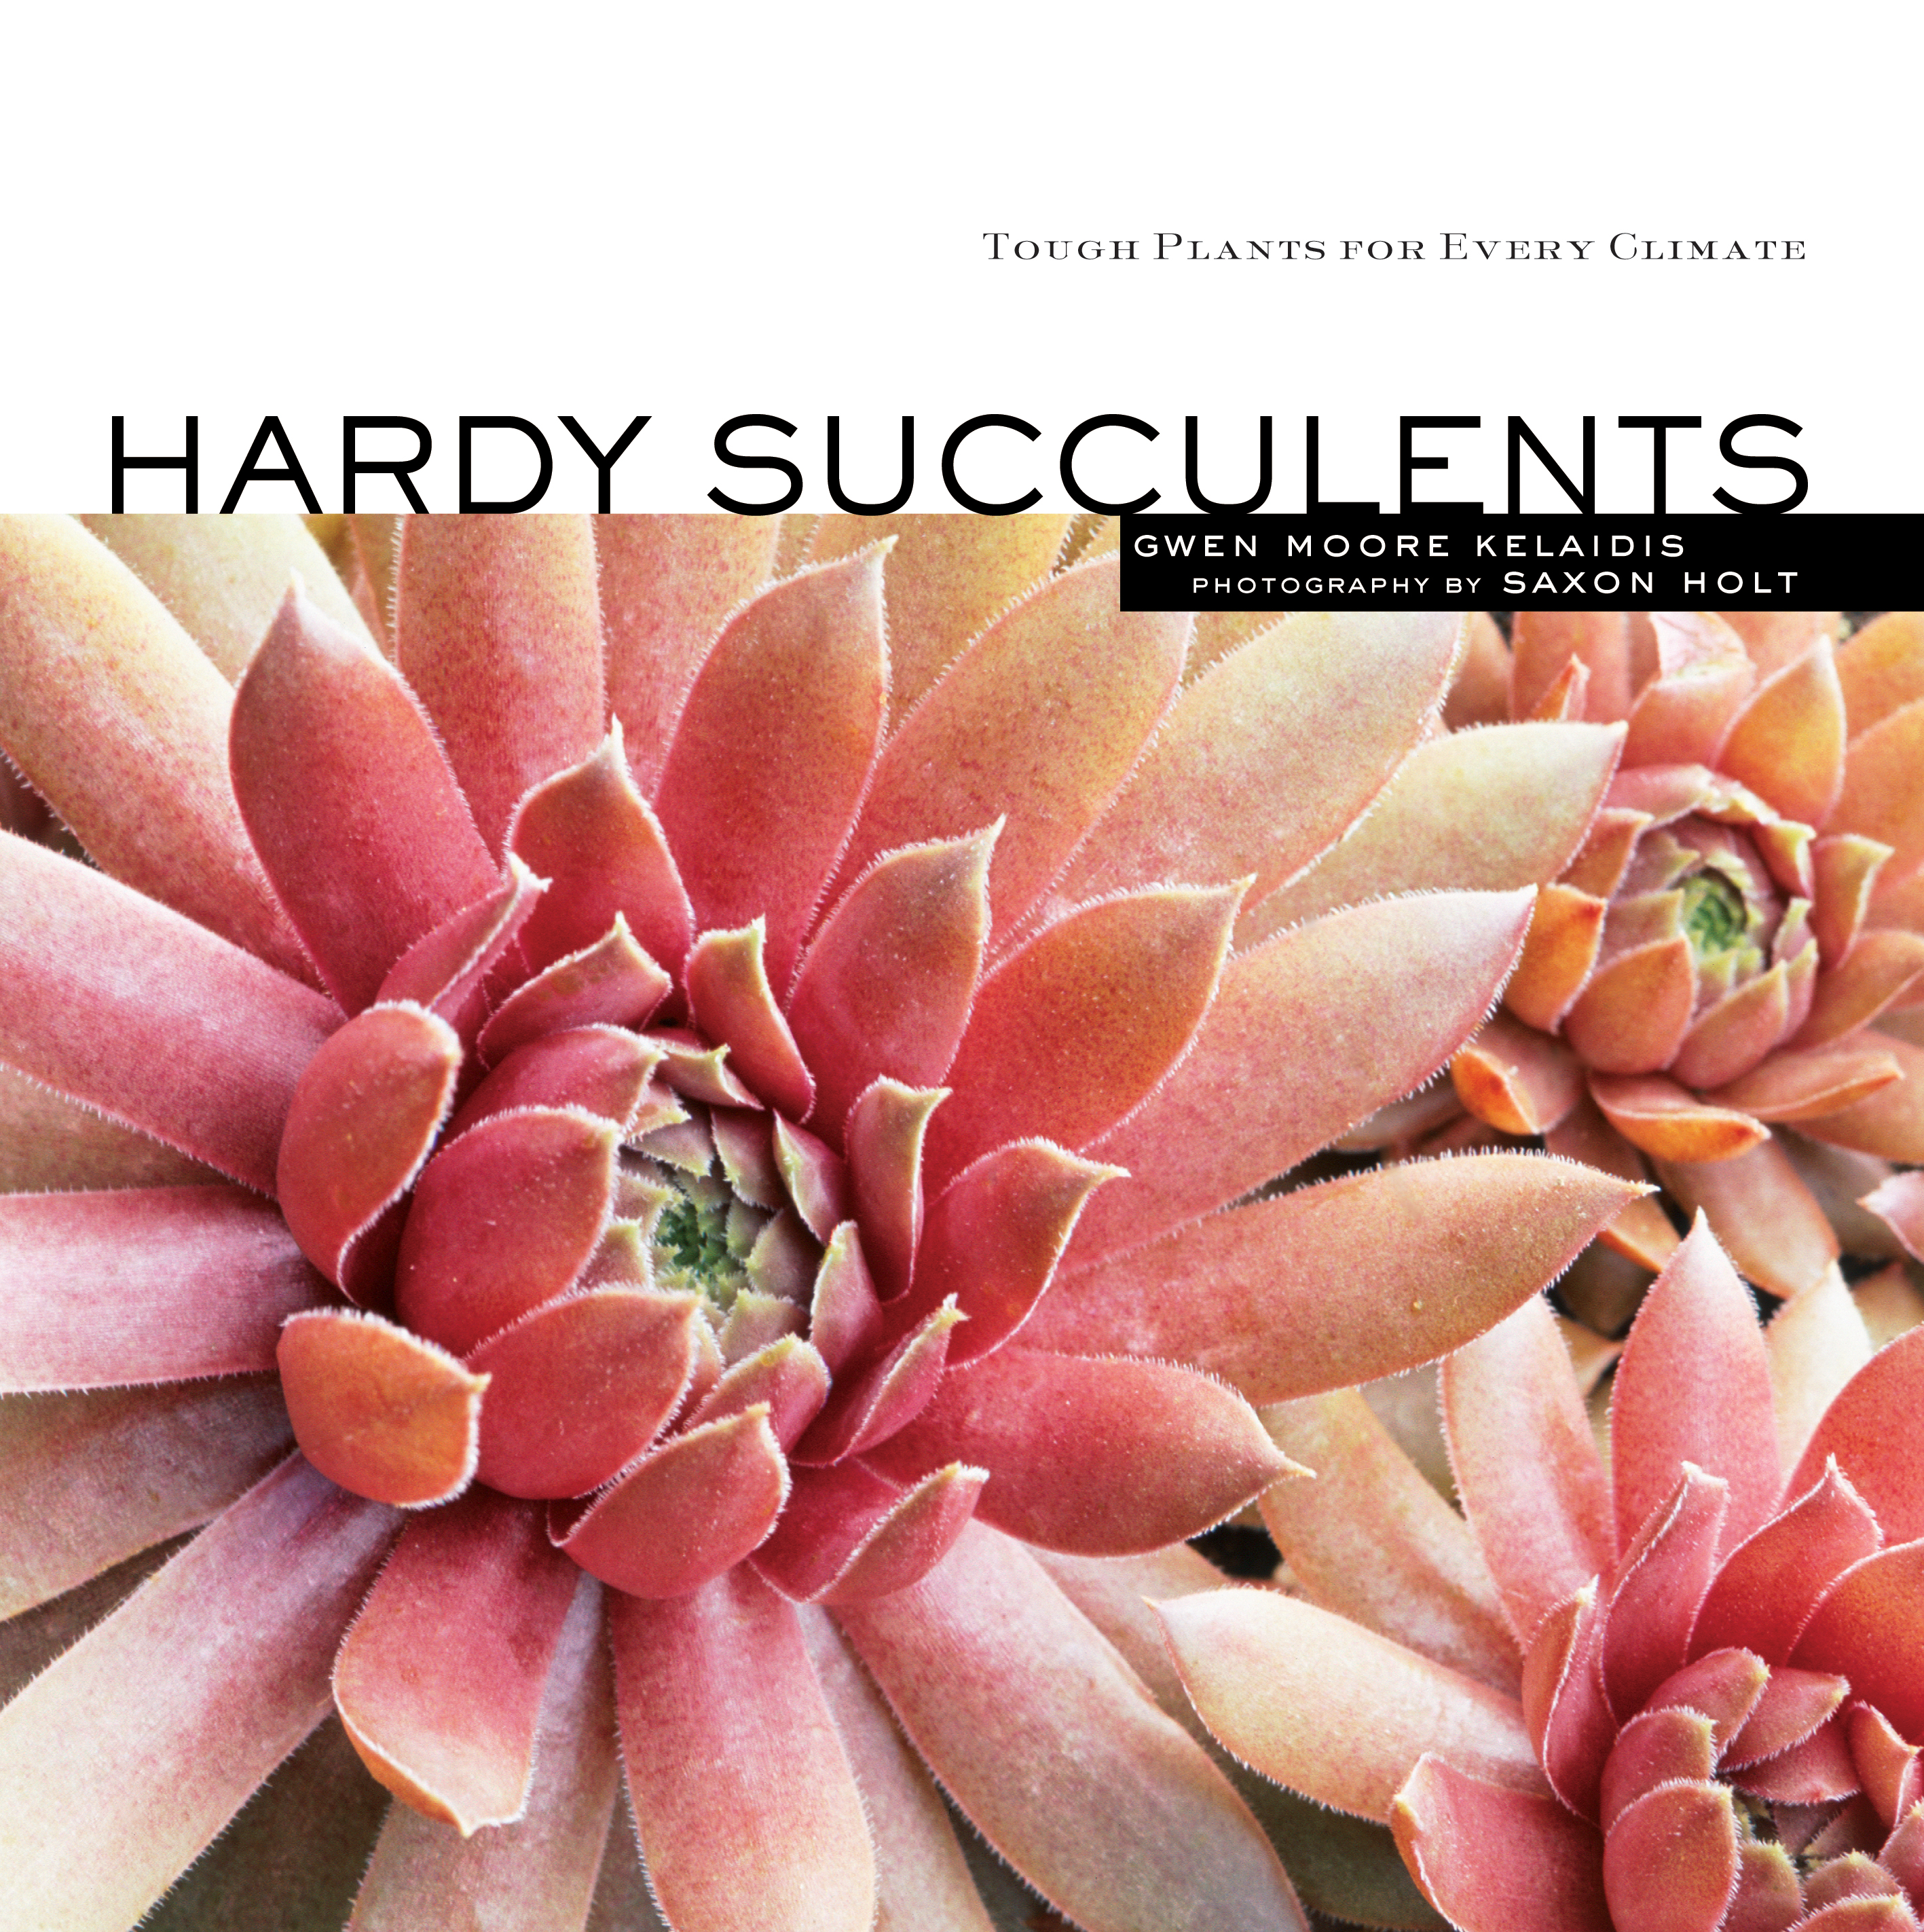 Hardy Succulents Tough Plants for Every Climate